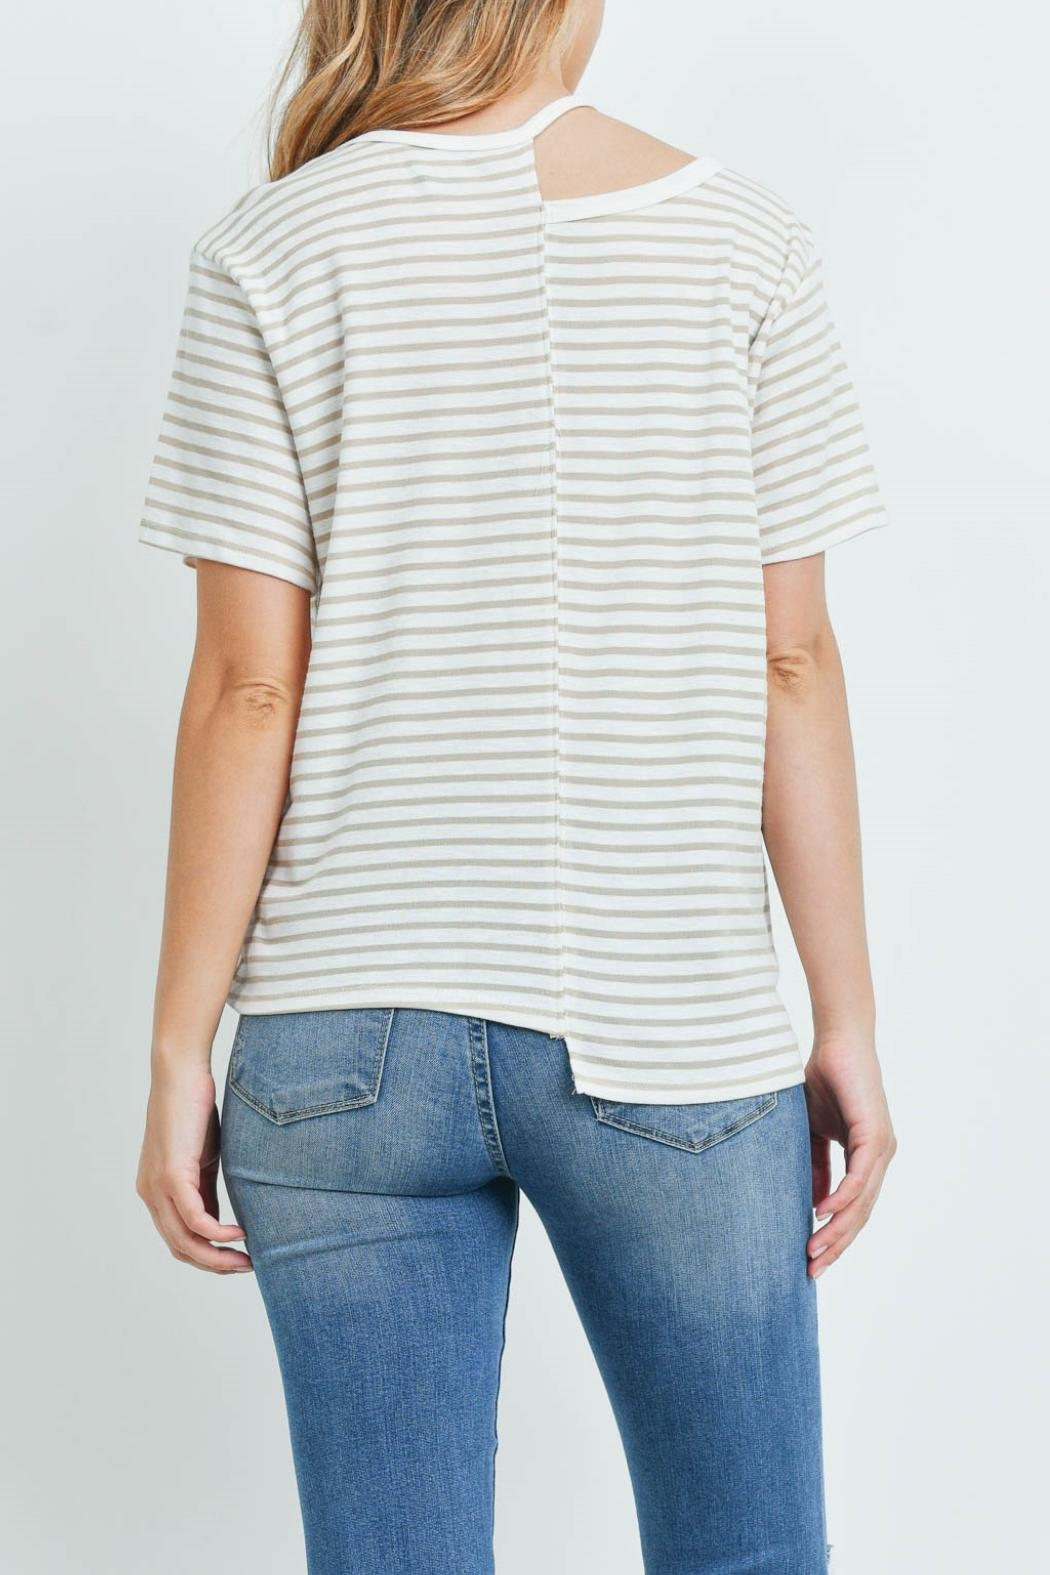 Jolie Ivory Taupe-Striped Top - Back Cropped Image